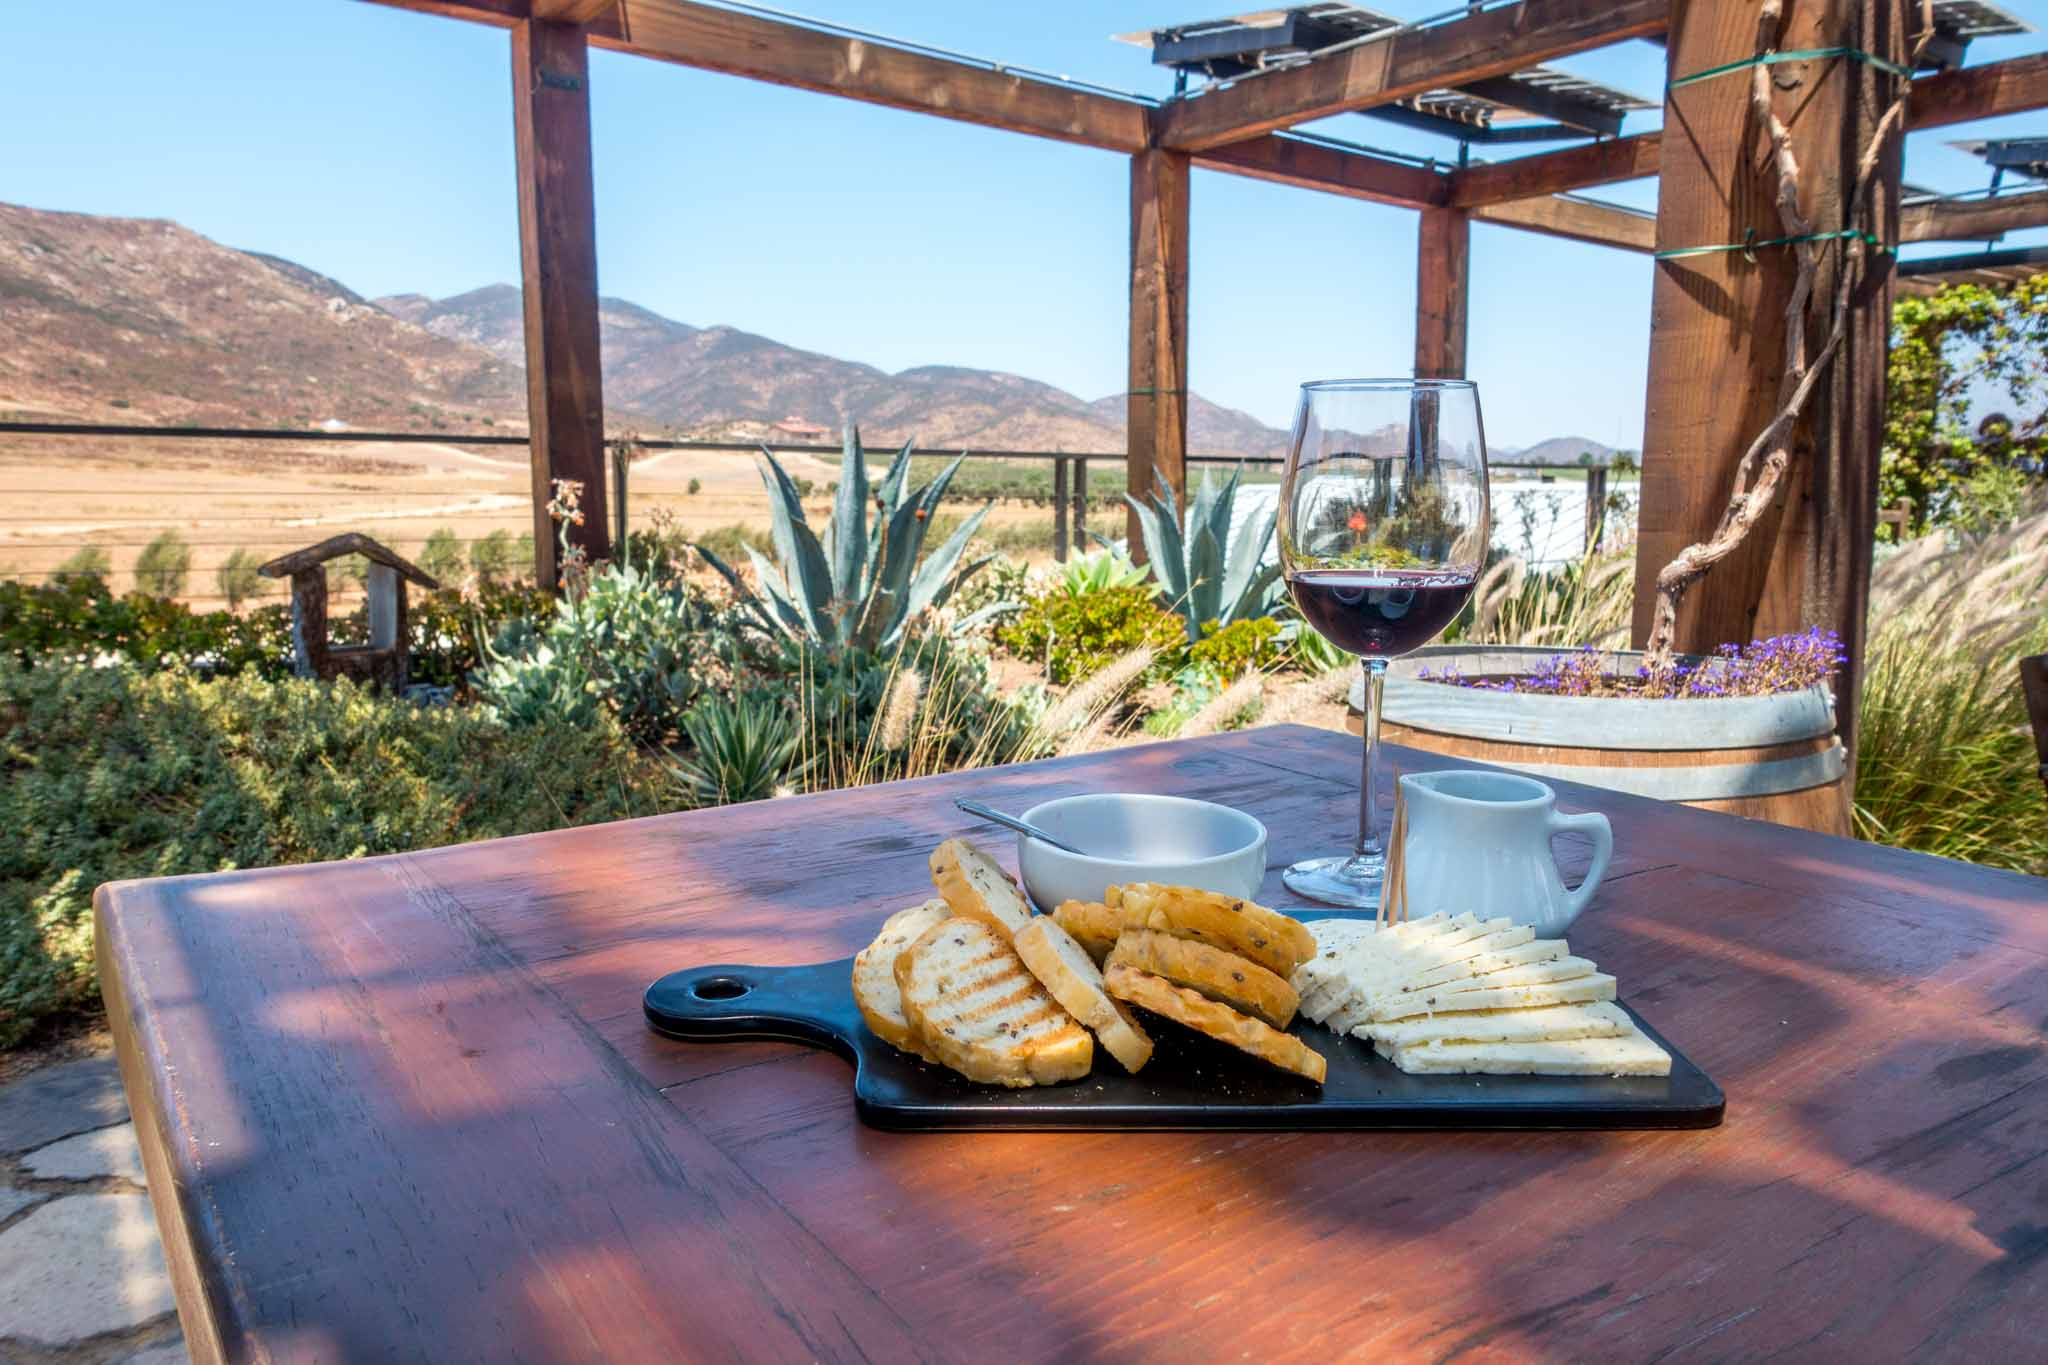 Enjoying the wines in the Valle de Guadalupe Mexico at Finca la Carrodilla winery